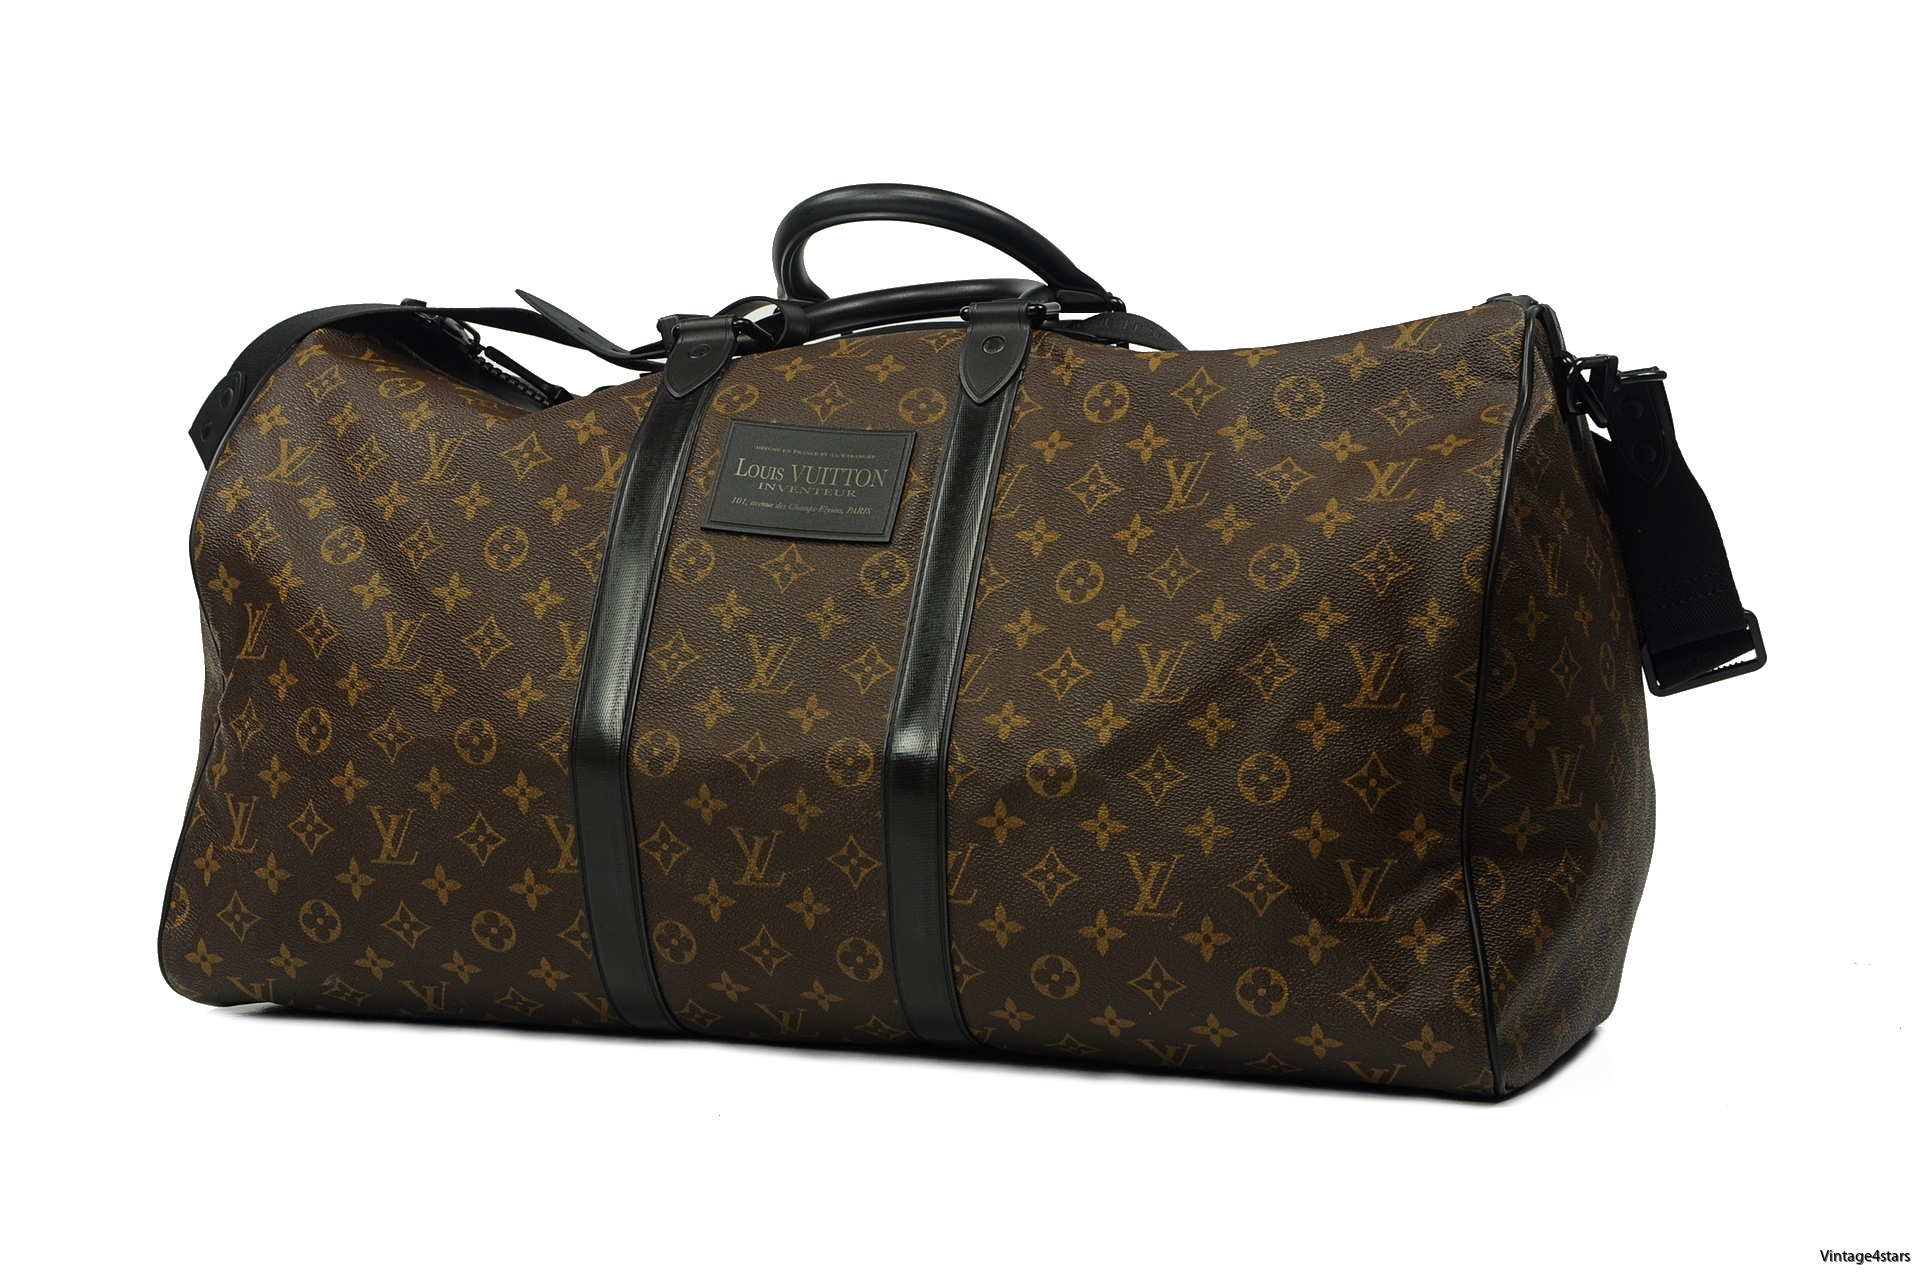 LOUIS VUITTON KEEPALL WATERPROOF 1